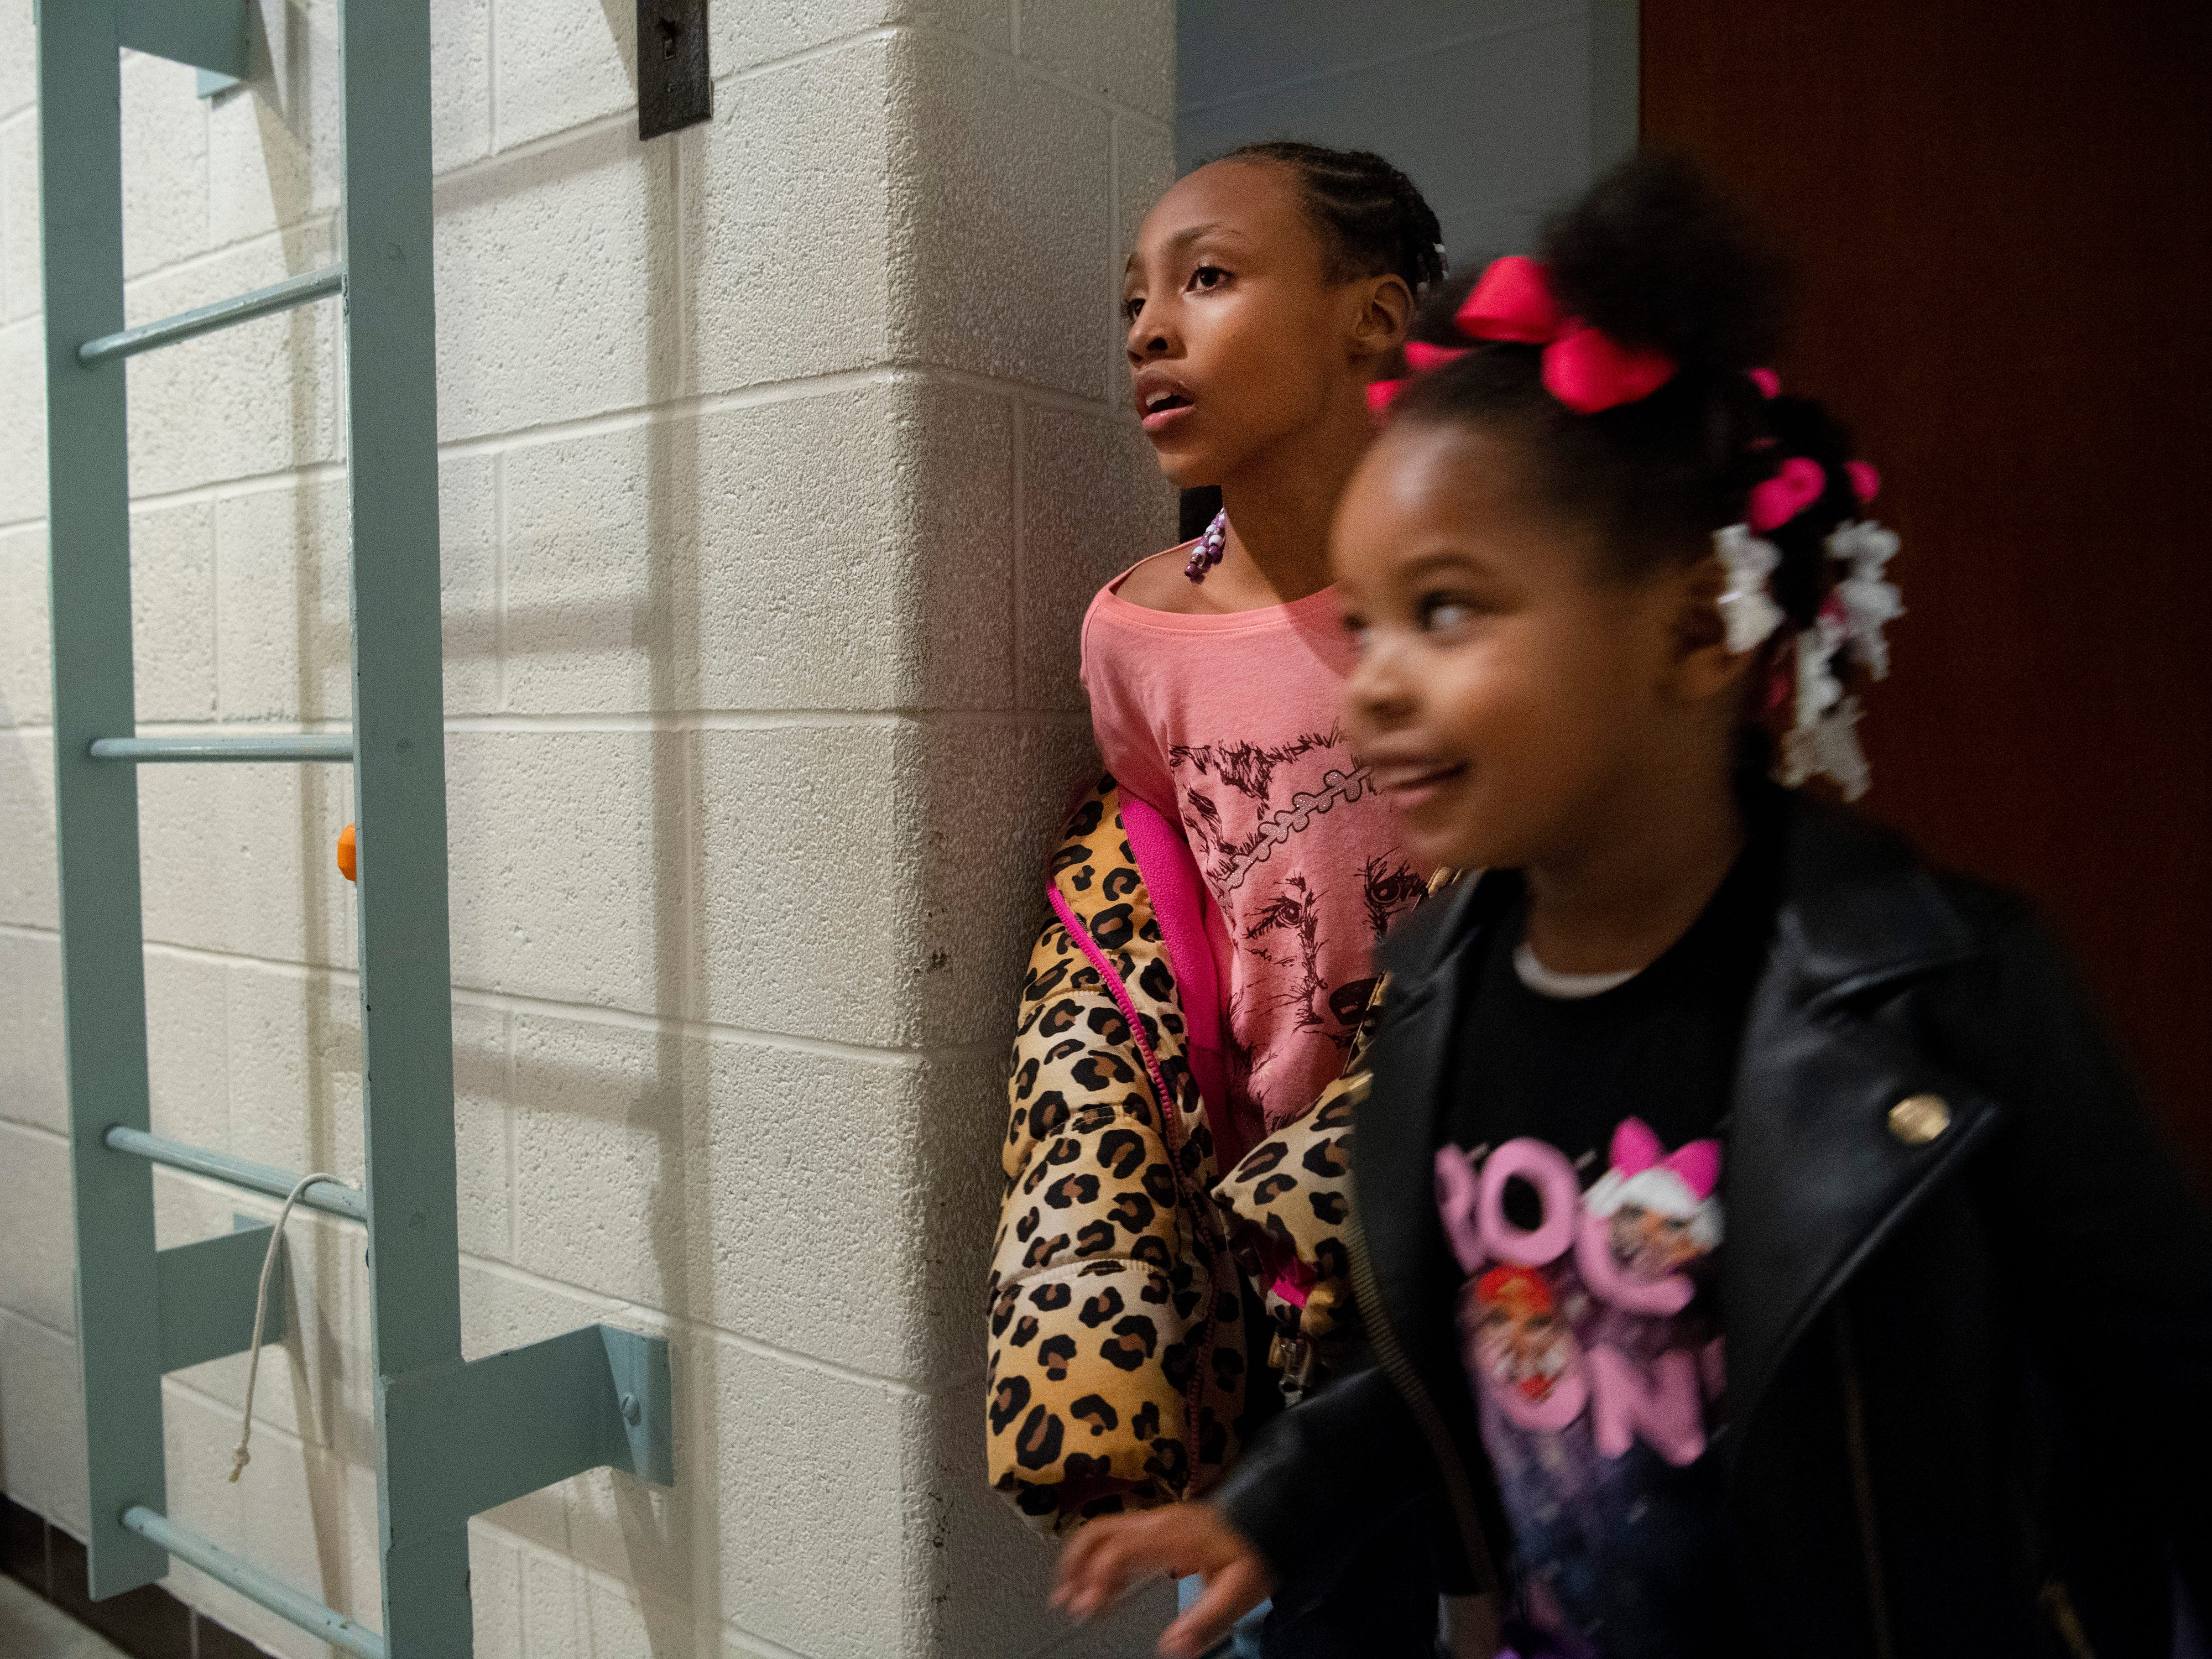 Aysia Hall, 8, top, and Adria Wiley, 4, round the corner backstage at Caze Elementary School to find the crafting area onstage at the Sweetheart Dance Tuesday night.